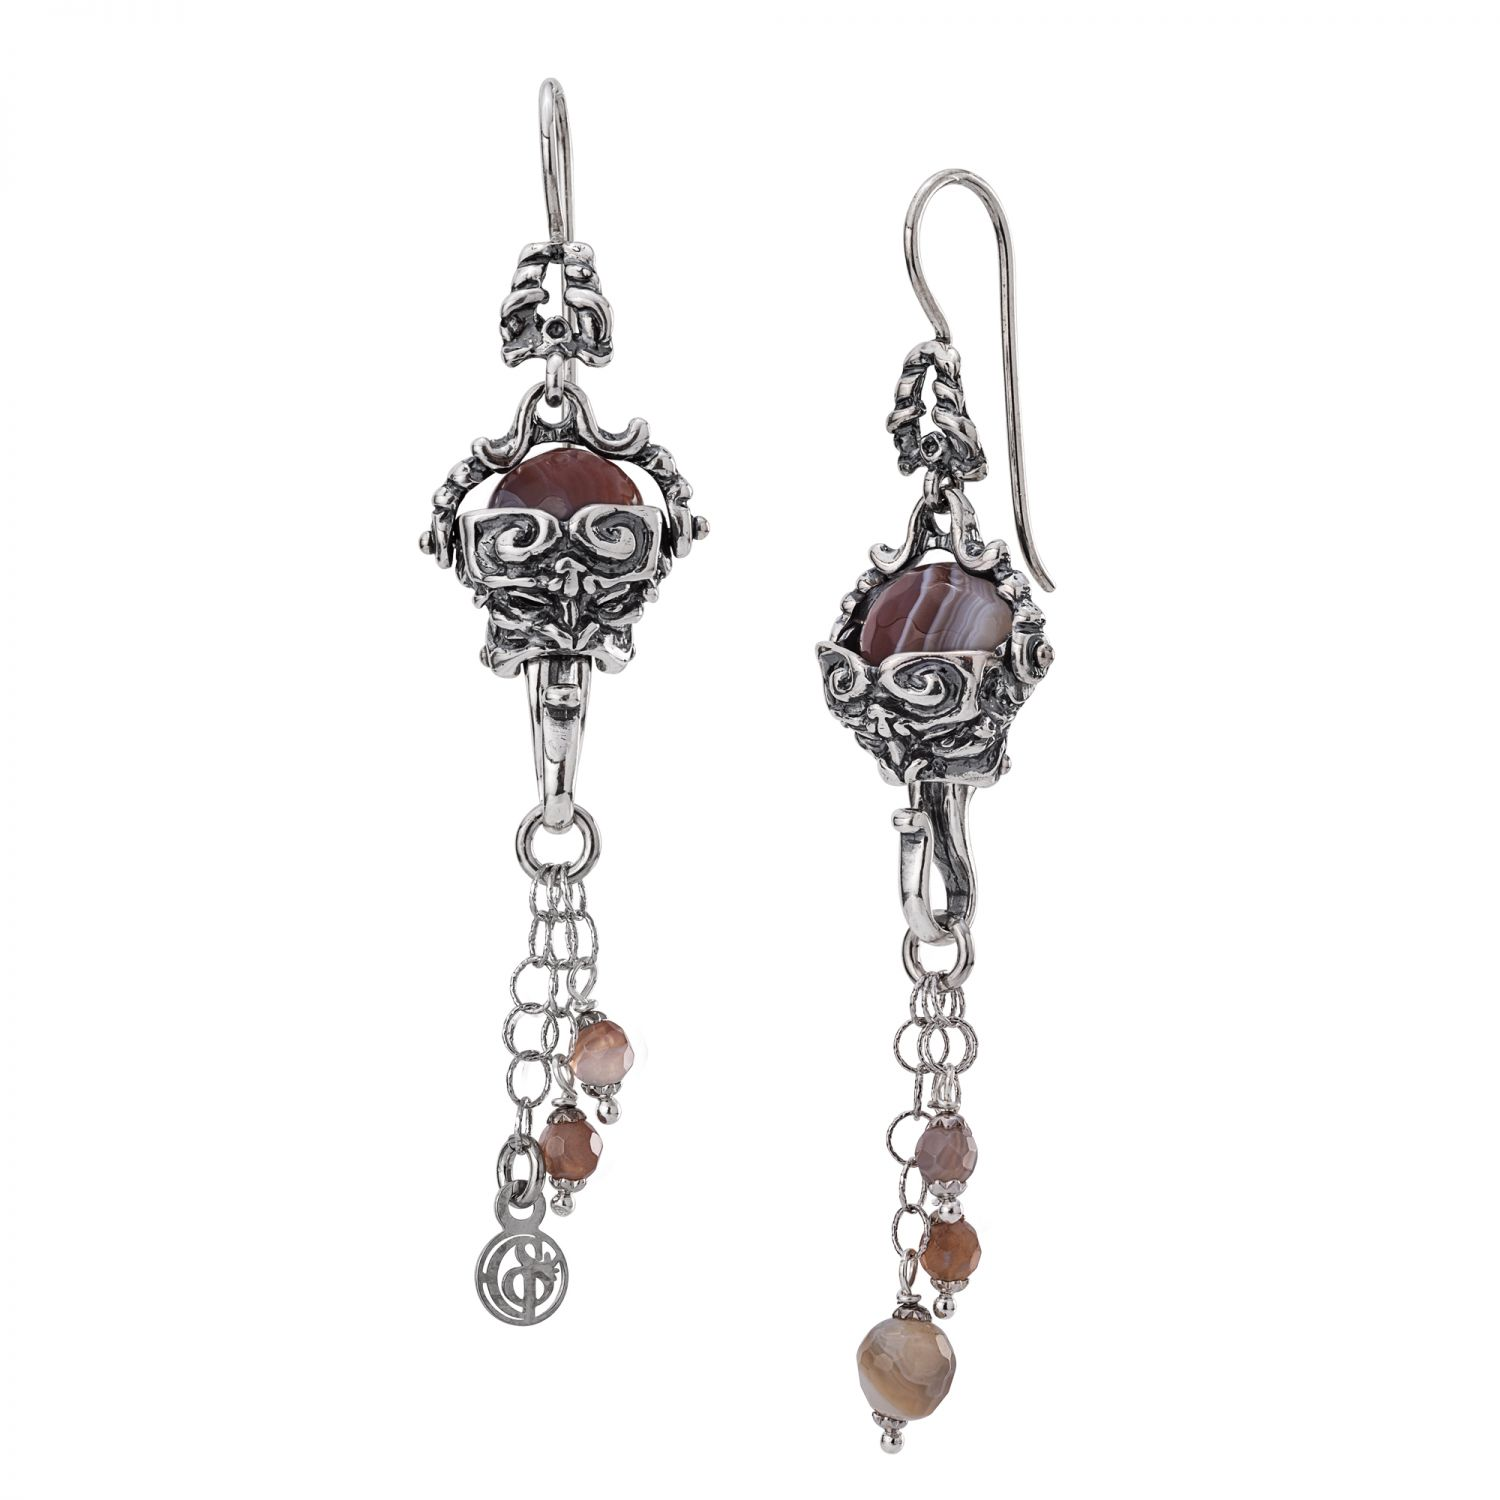 Silver Earrings with Agates and Mask (28027)